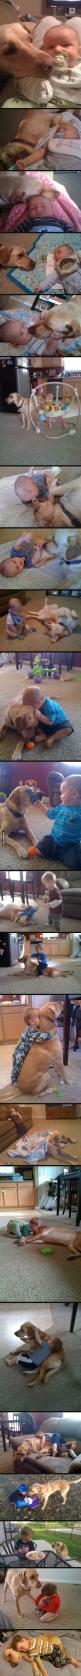 Best friends for 2 1/2 years. My heart just melted: Sweet, Best Friends, Pet, My Heart, Baby, 1 2 Years, Dog, Animal, Kid